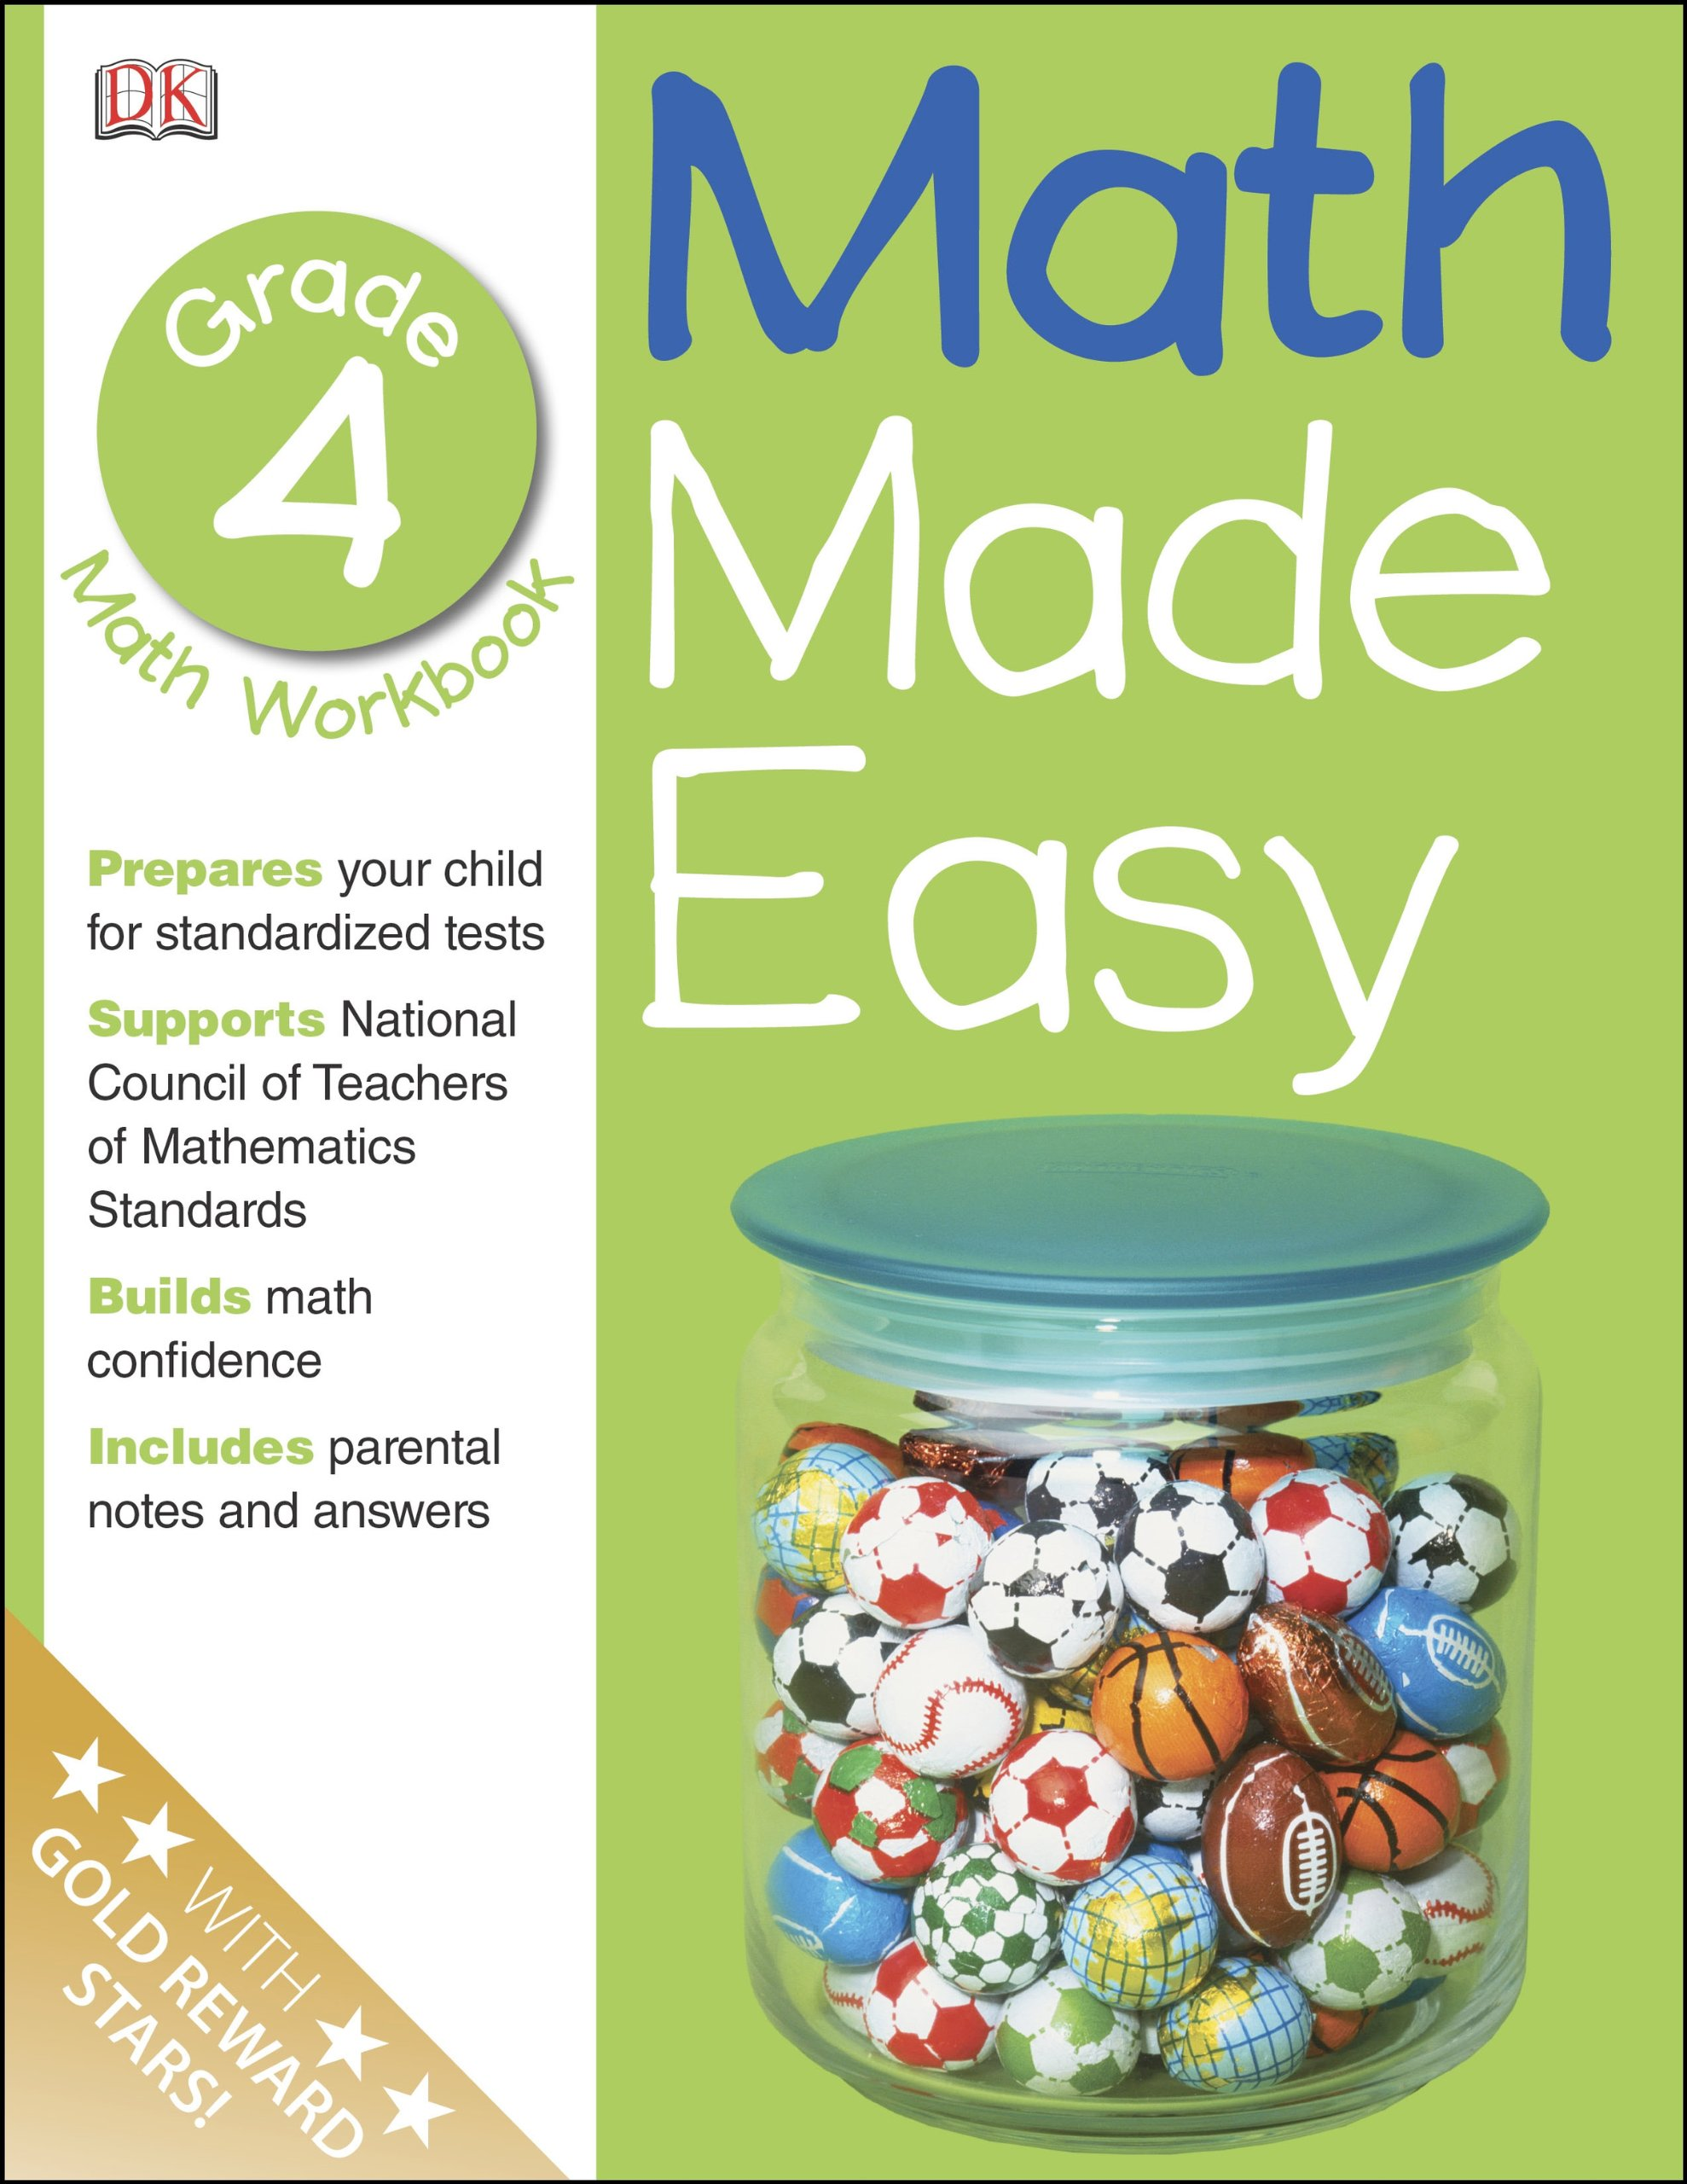 Printables Practice Most Likely And Least Events 4th Grade math made easy fourth grade workbook dk 9780789457356 amazon com books